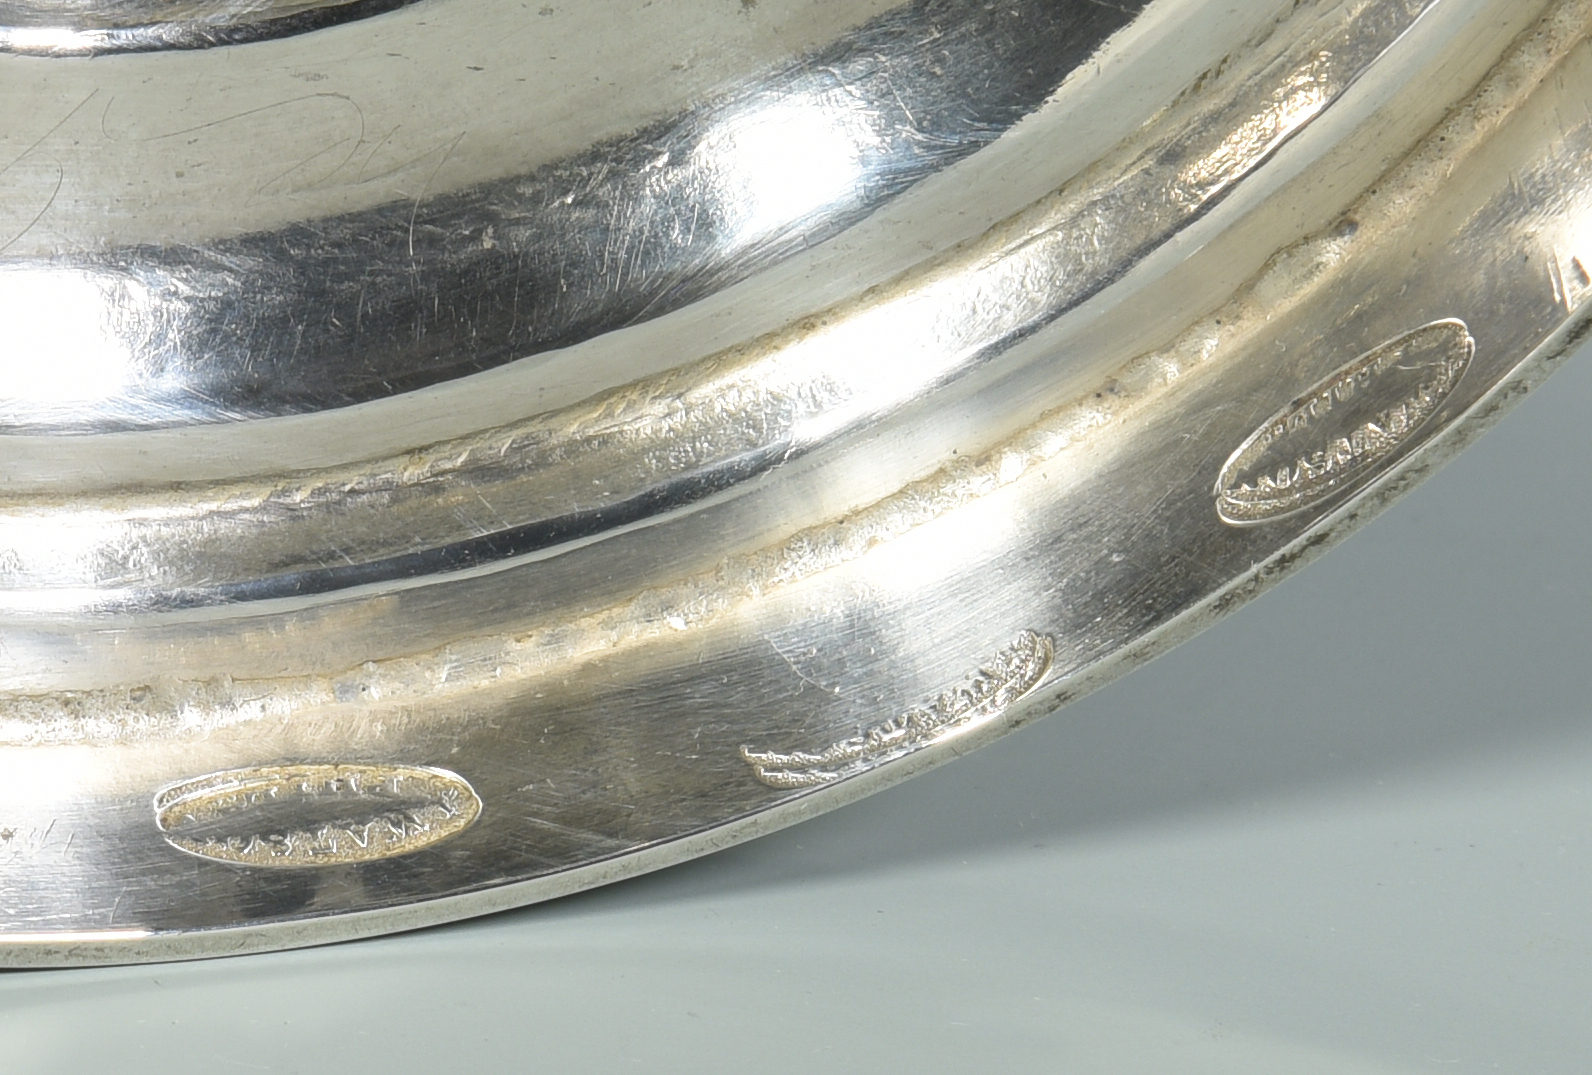 Lot 157: Philadelphia Coin Silver Waste Bowl, Yeatman Family History